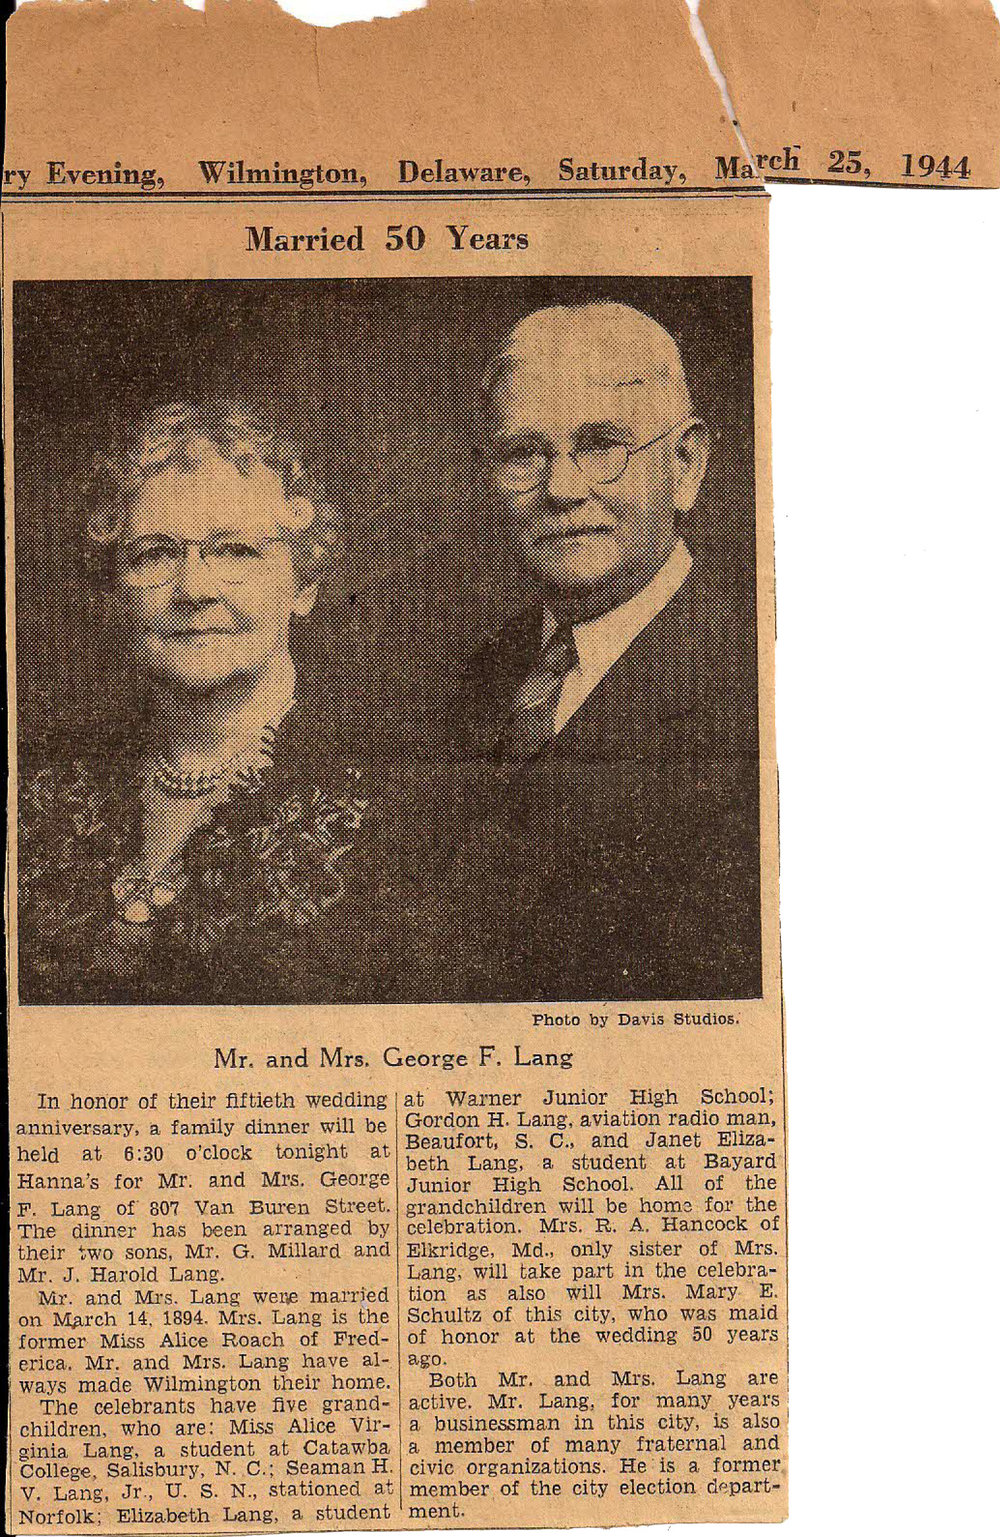 George F. Lang and his wife of 50 years.